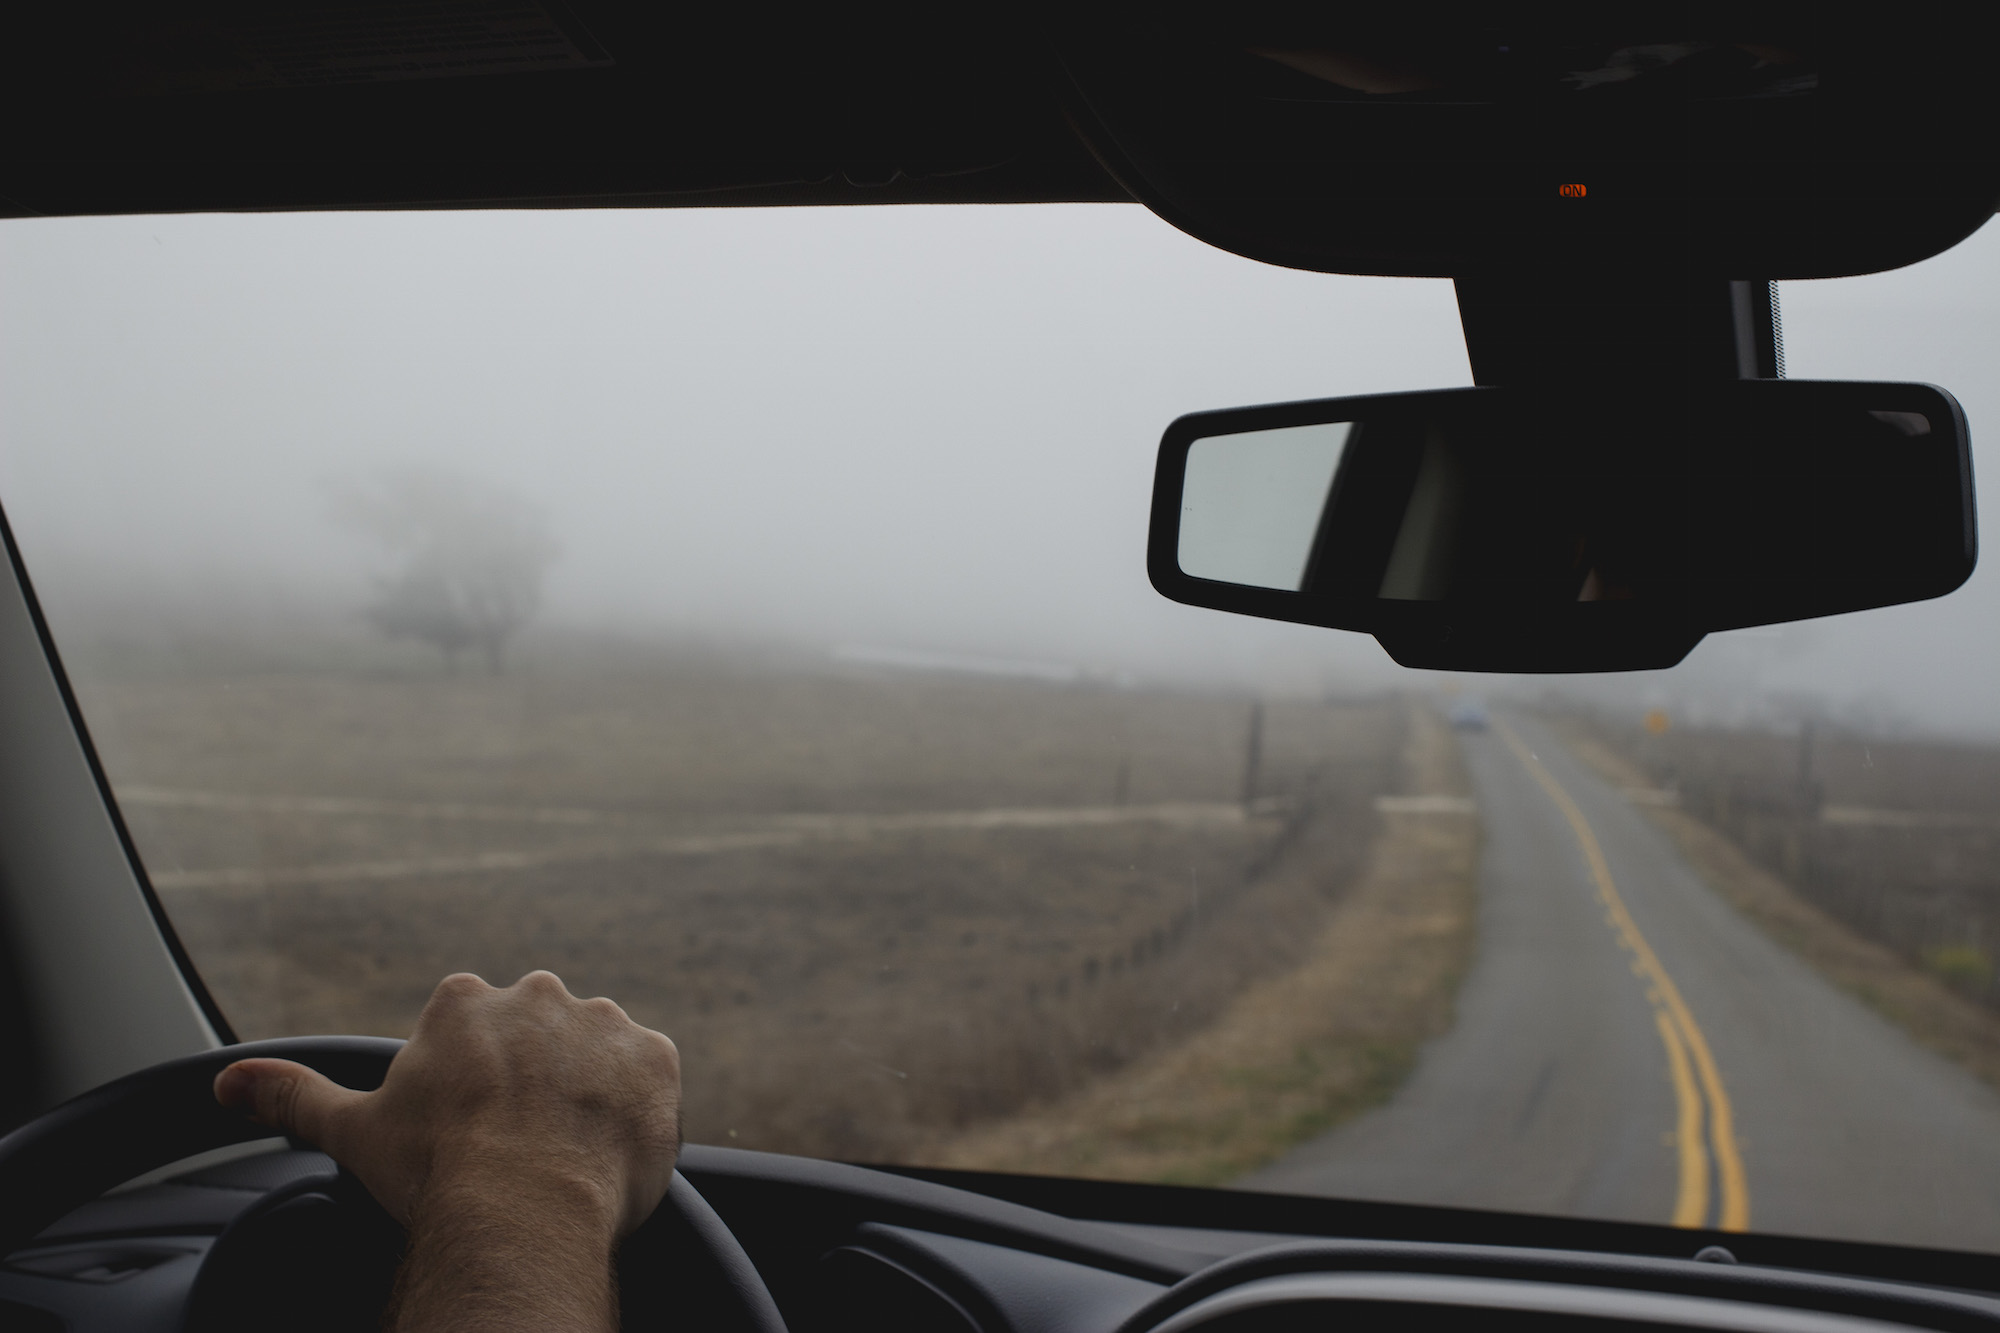 hands-on-steering-wheel-foggy-road.jpg